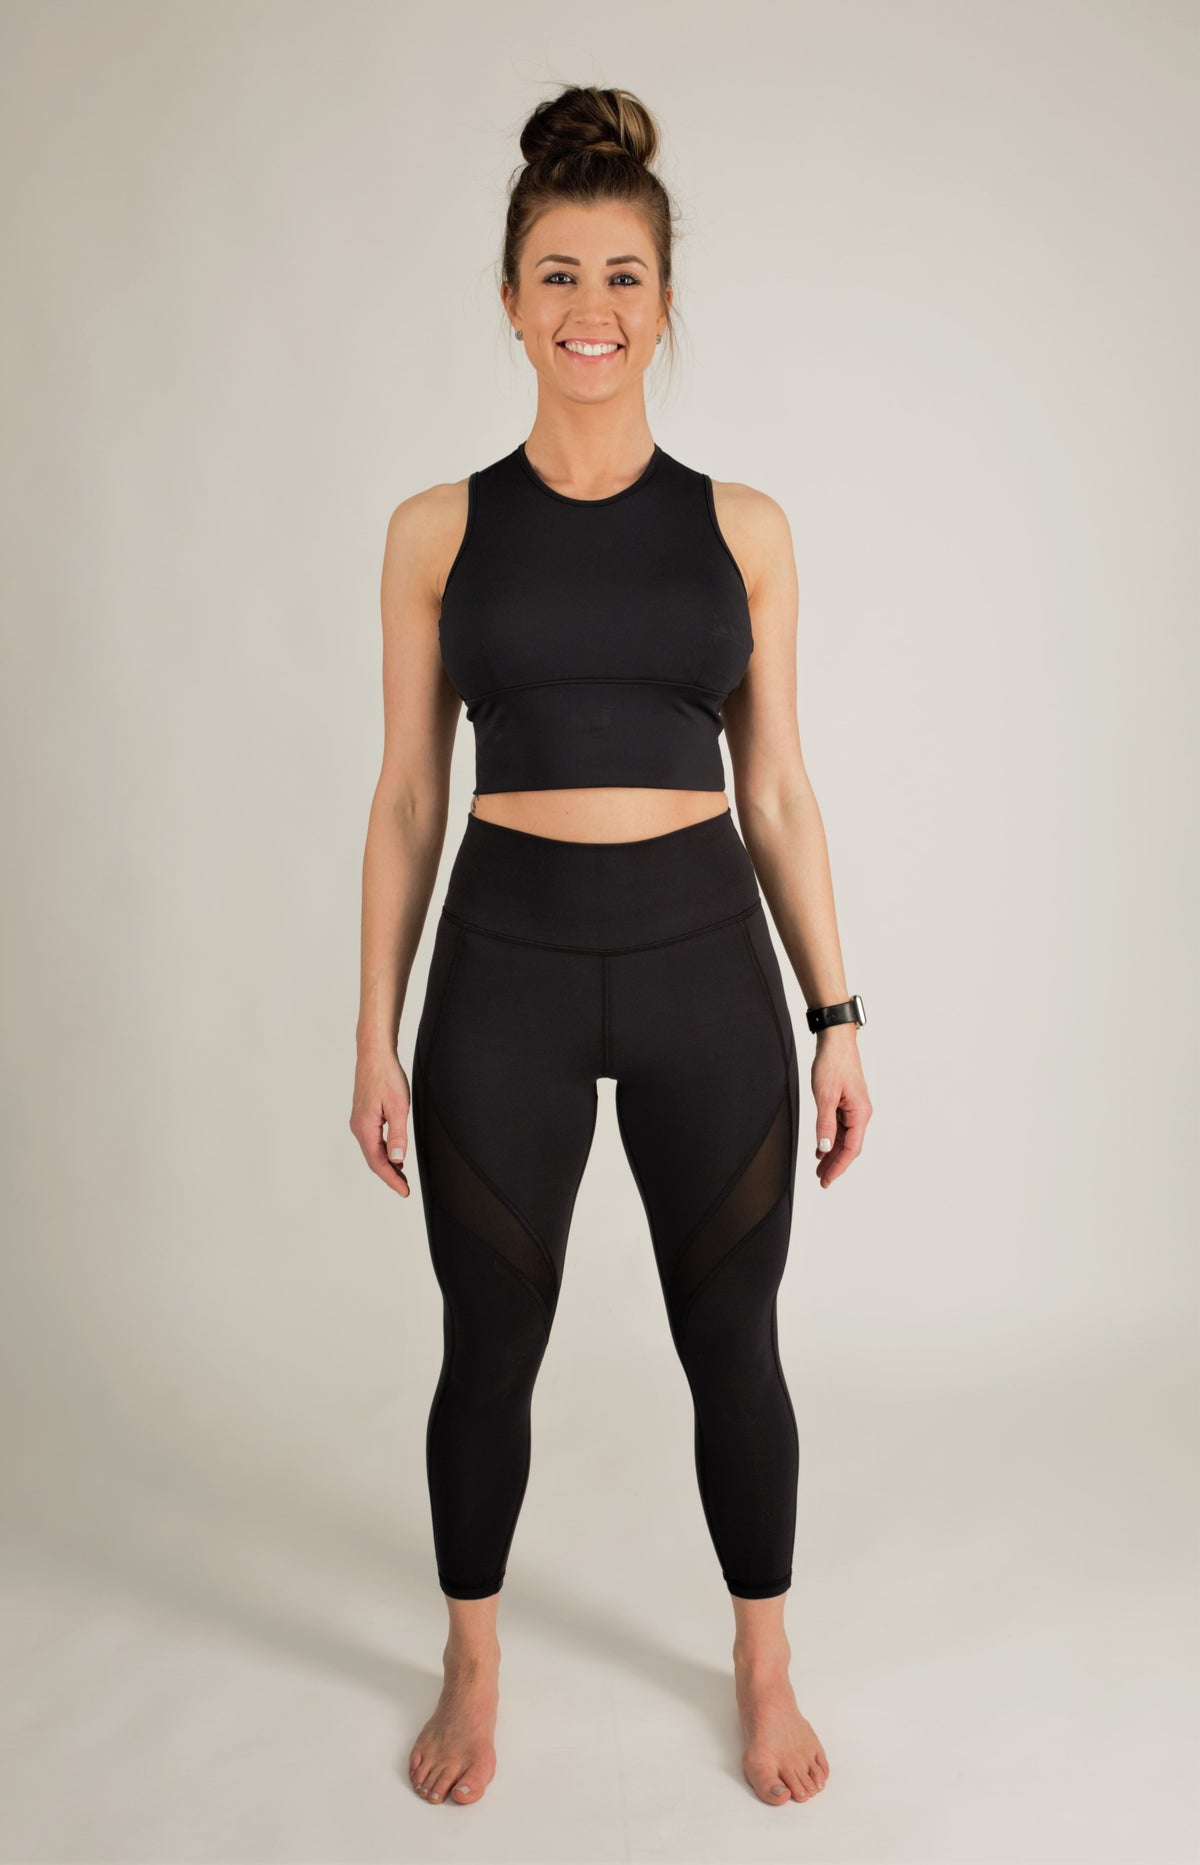 Black tummy control leggings and matching top